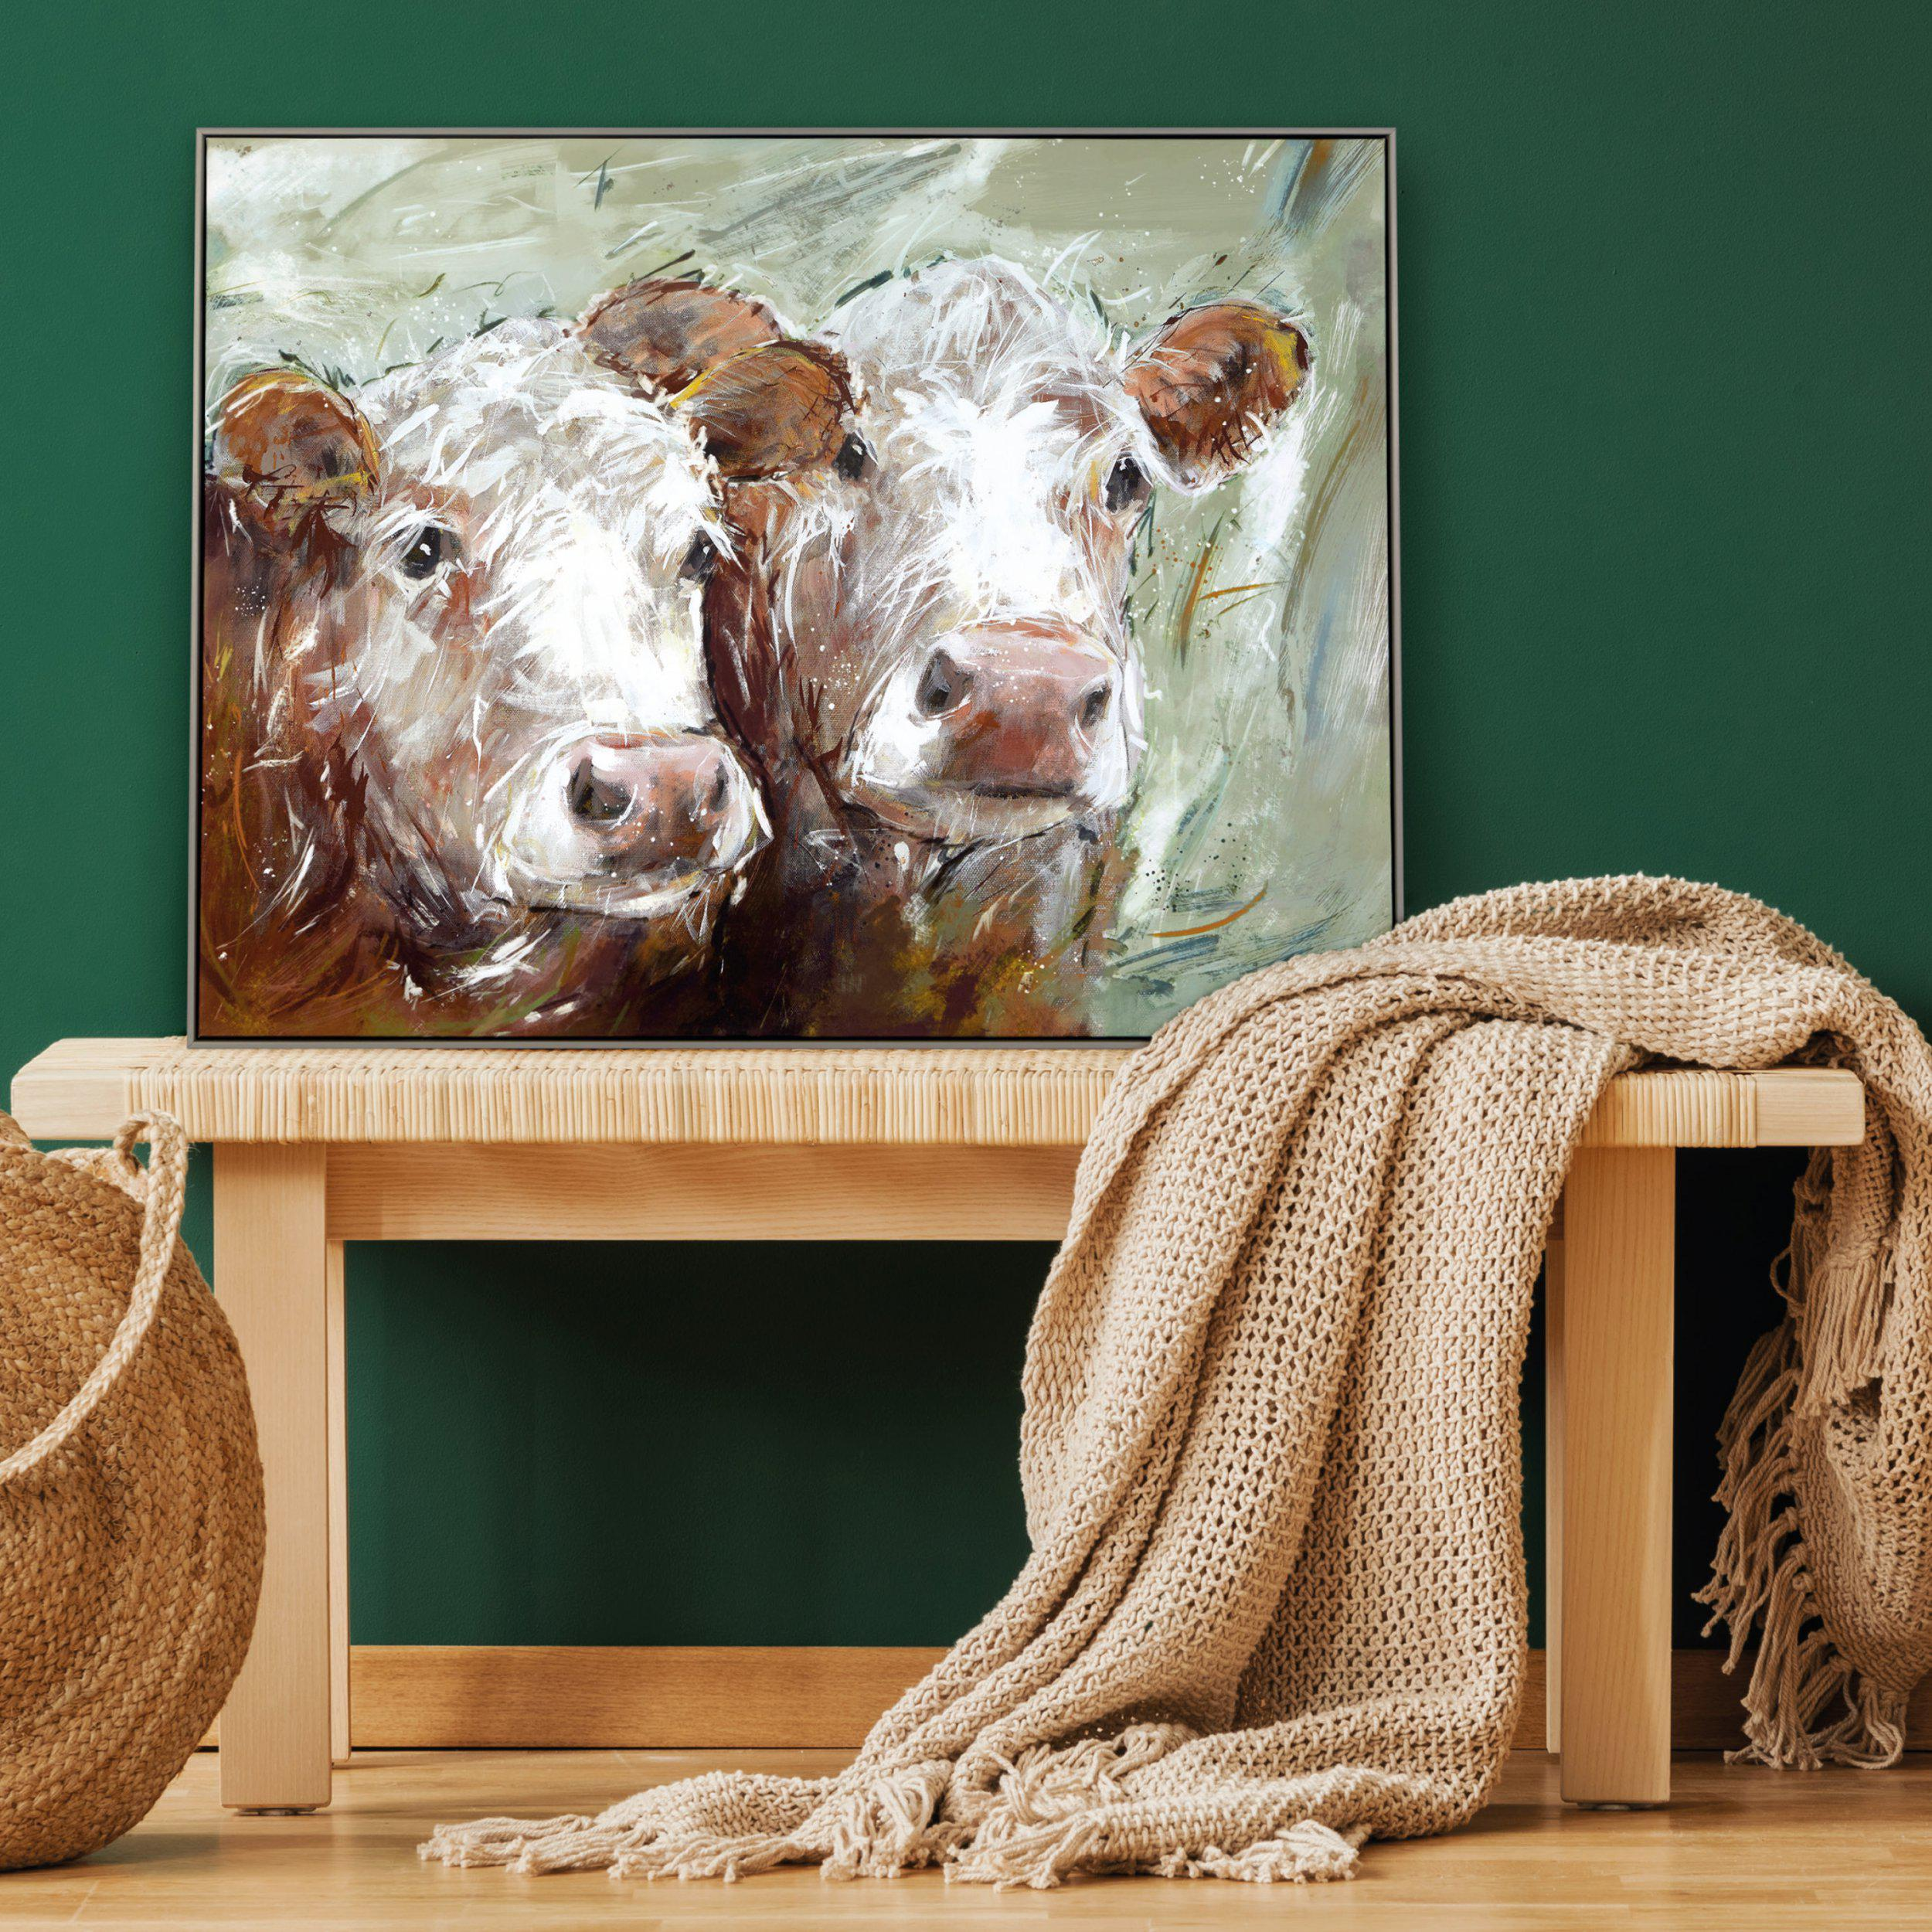 Art Gallery - Two Amigos - Cows Painting - Artist Adelene Fletcher - Framed Print - Surrounds West Byfleet